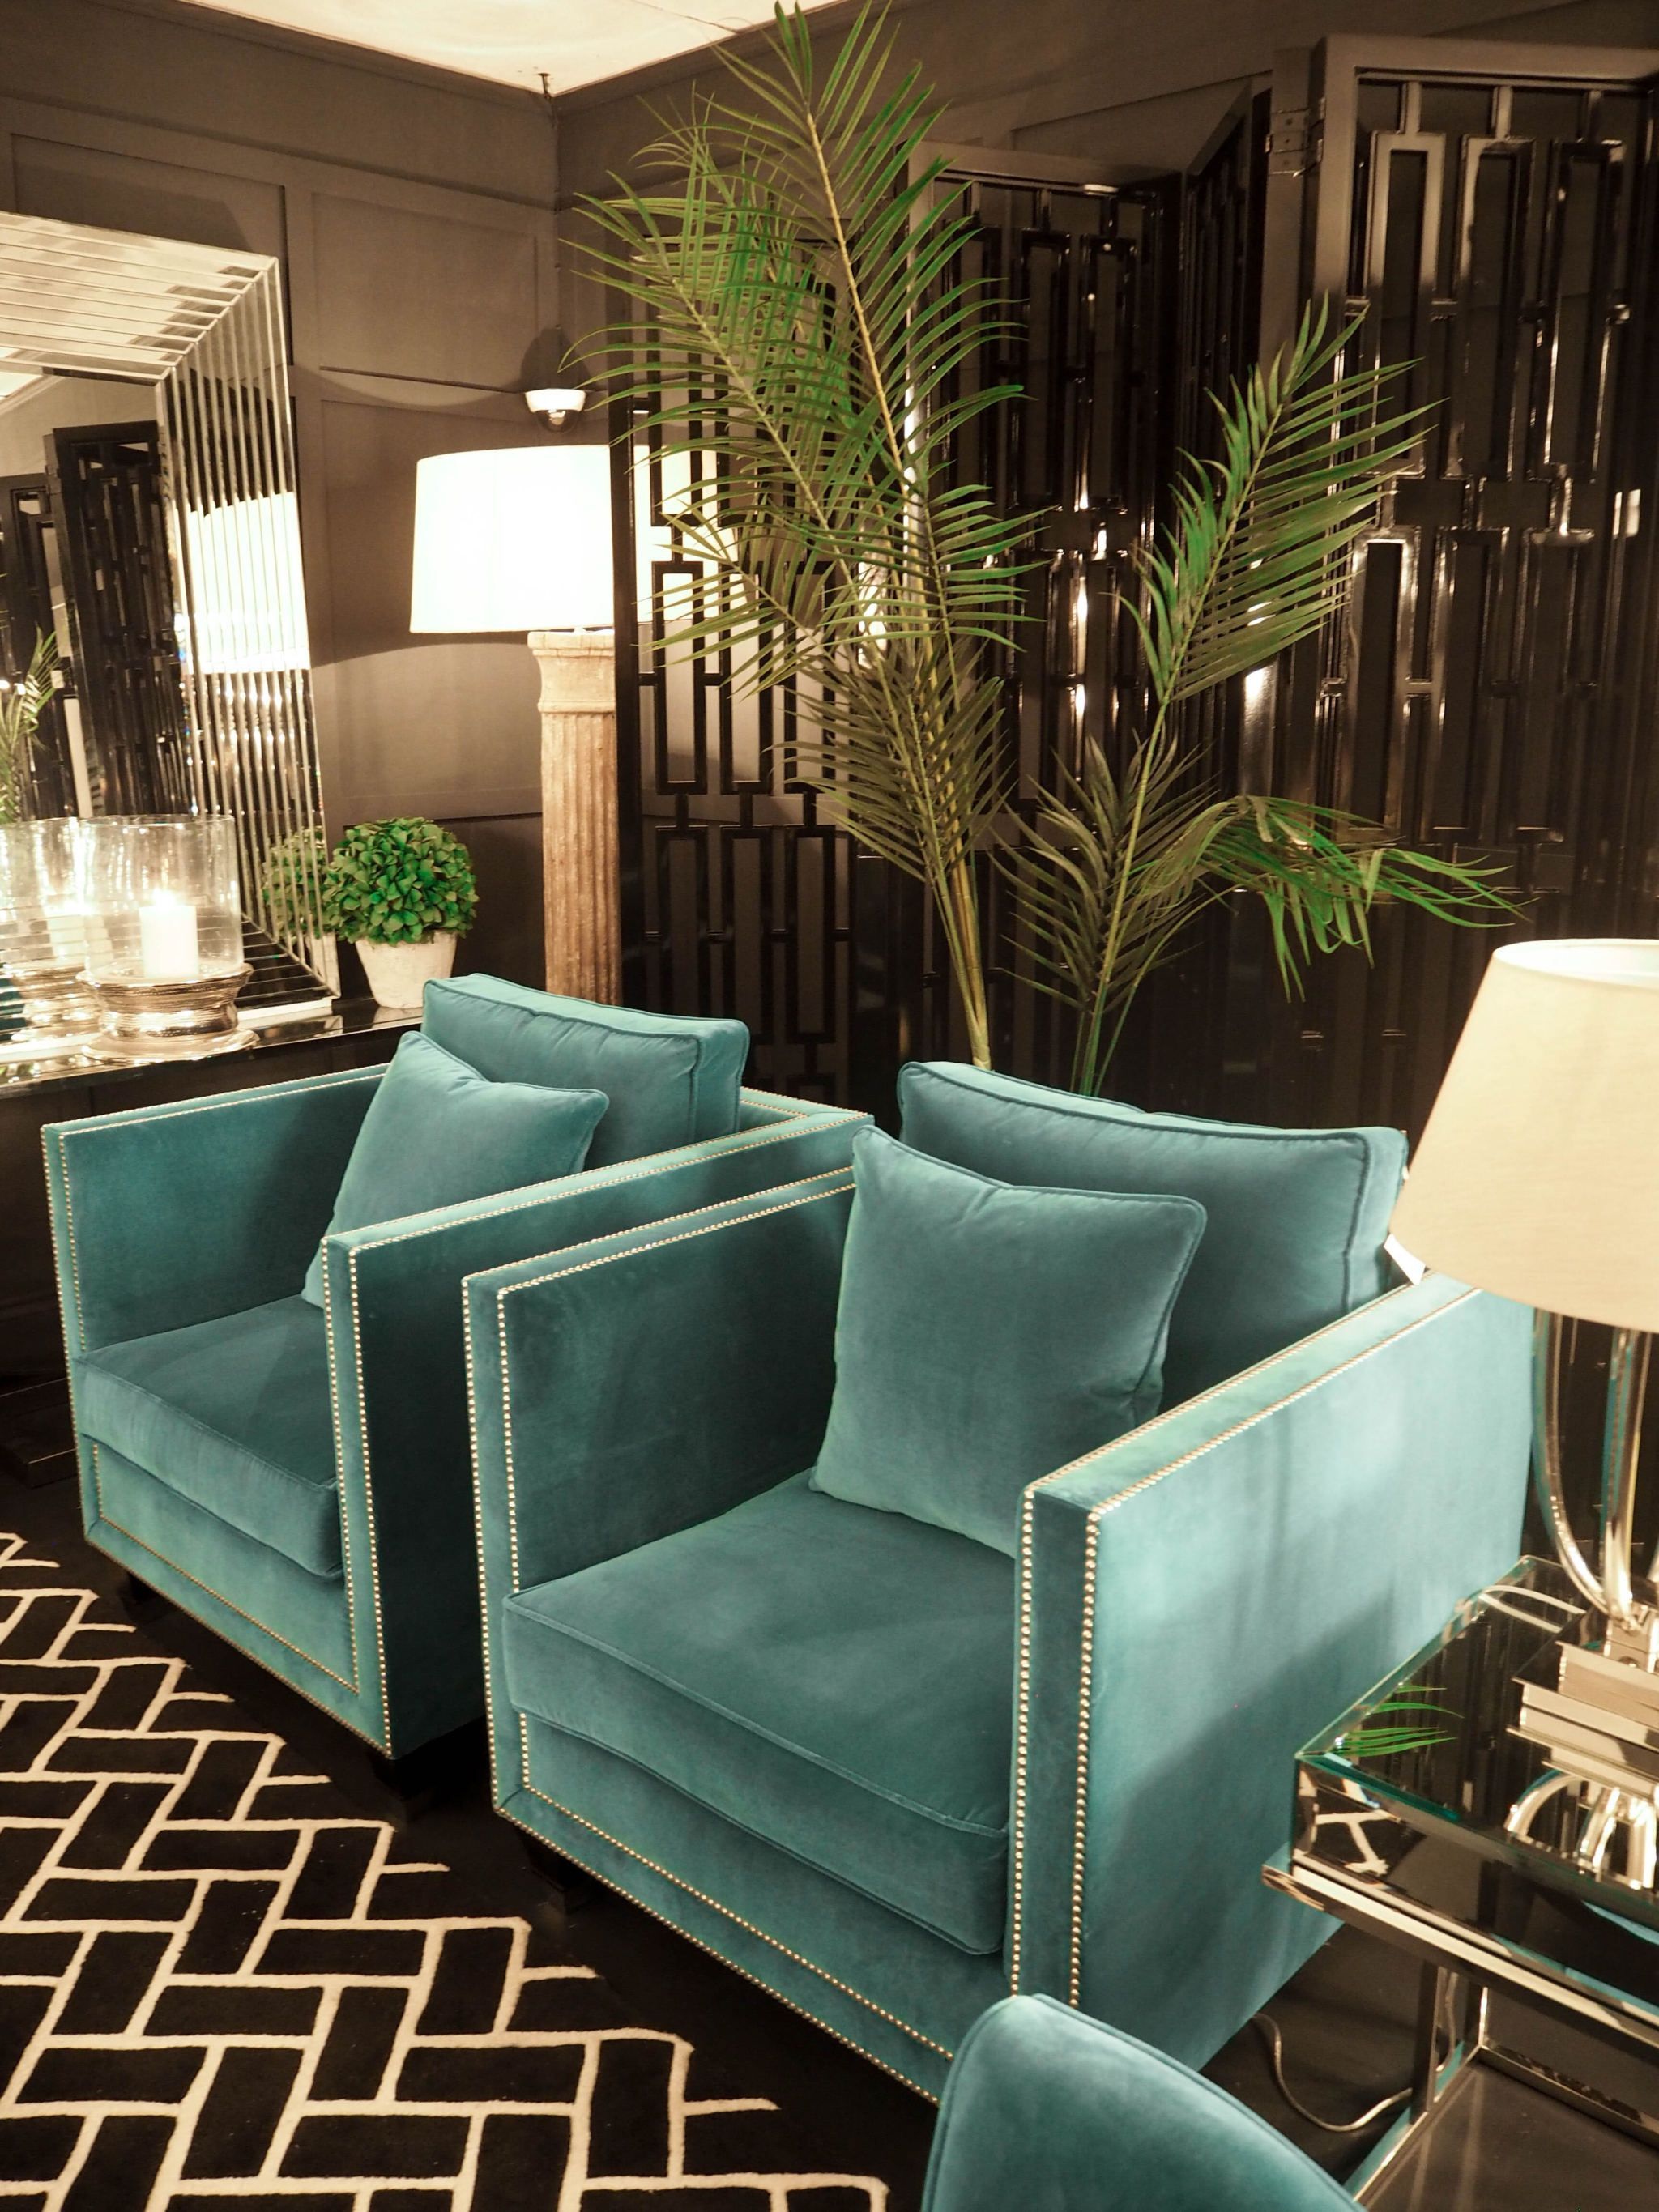 Home interior designers in chennai find out how to create luxurious home décor with these simple tips